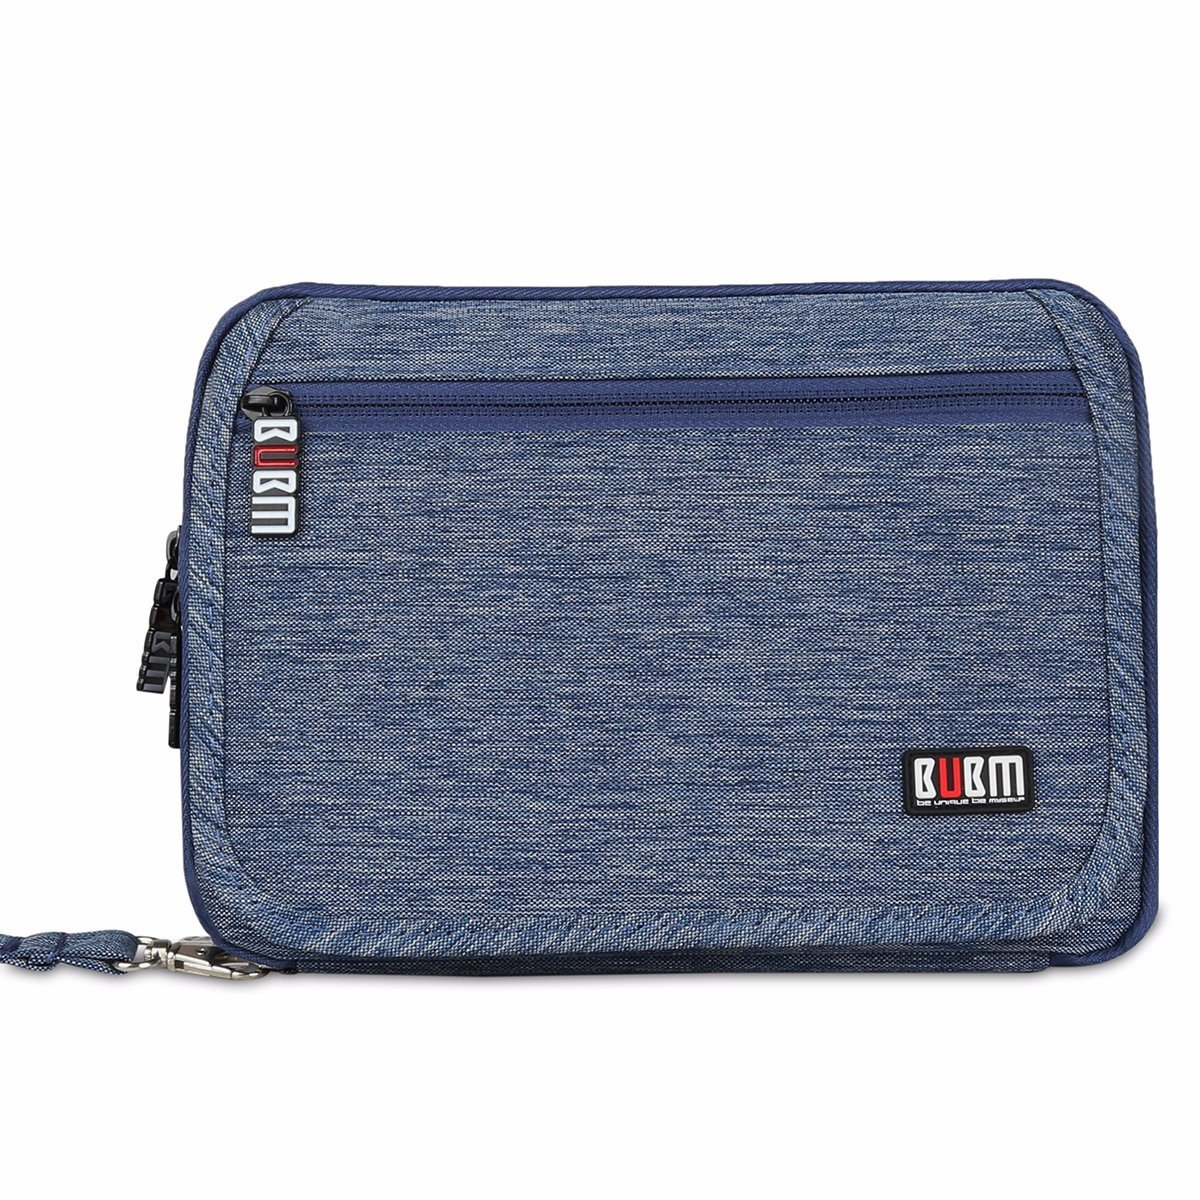 BUBM Portable Waterproof Travel Organizer,Universal Electronics Accessories Bag,Cable Stable Baby Kit Passport Holder(3 Layer-Blue)